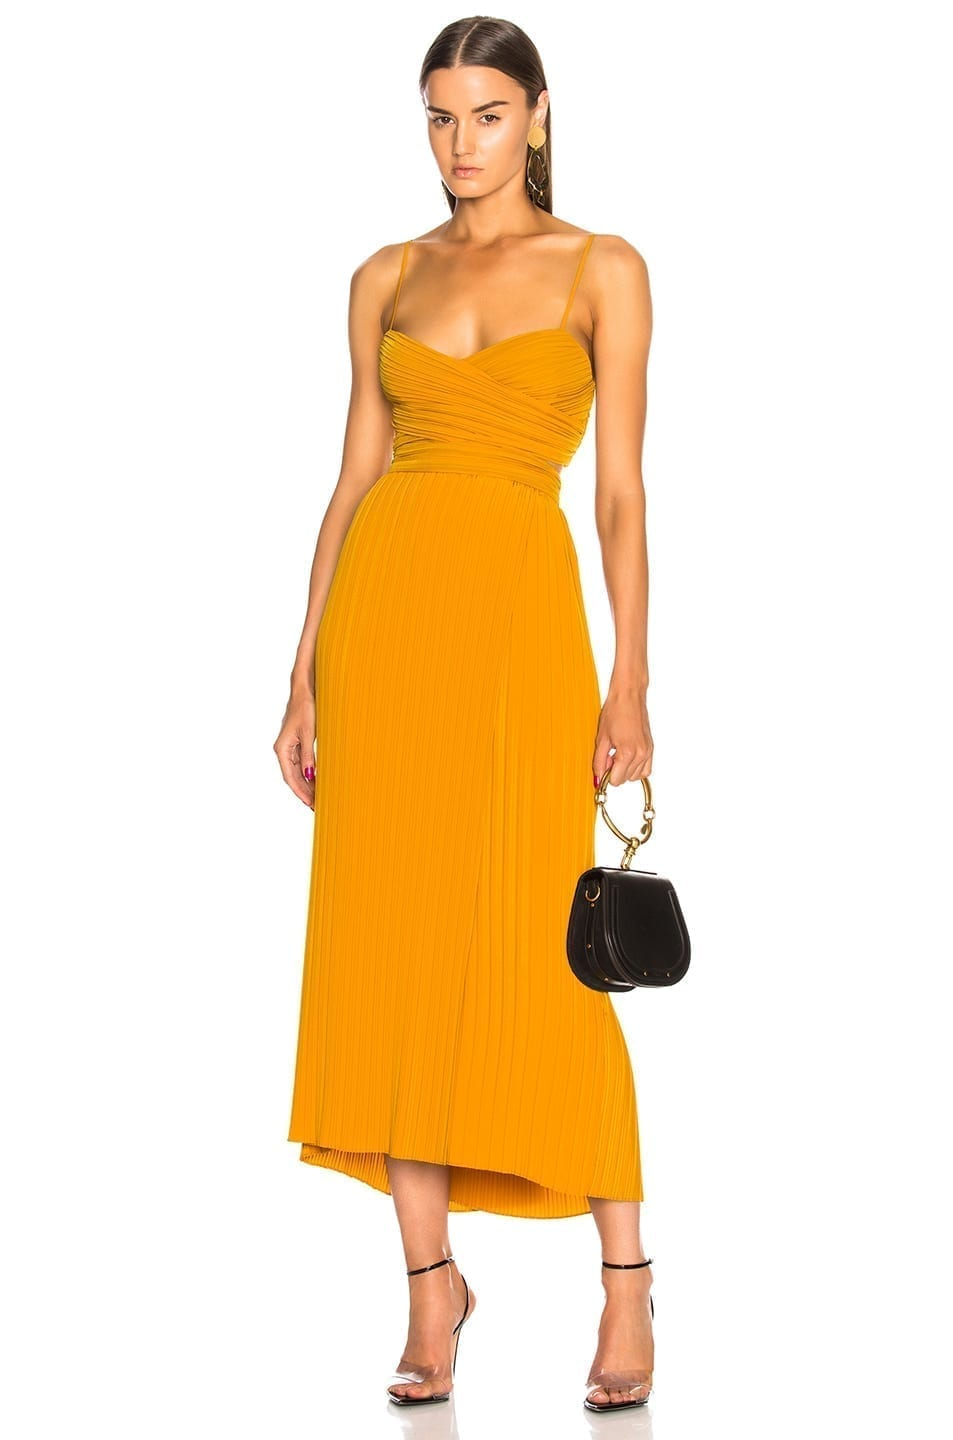 A.L.C. Sienna Marigold Dress